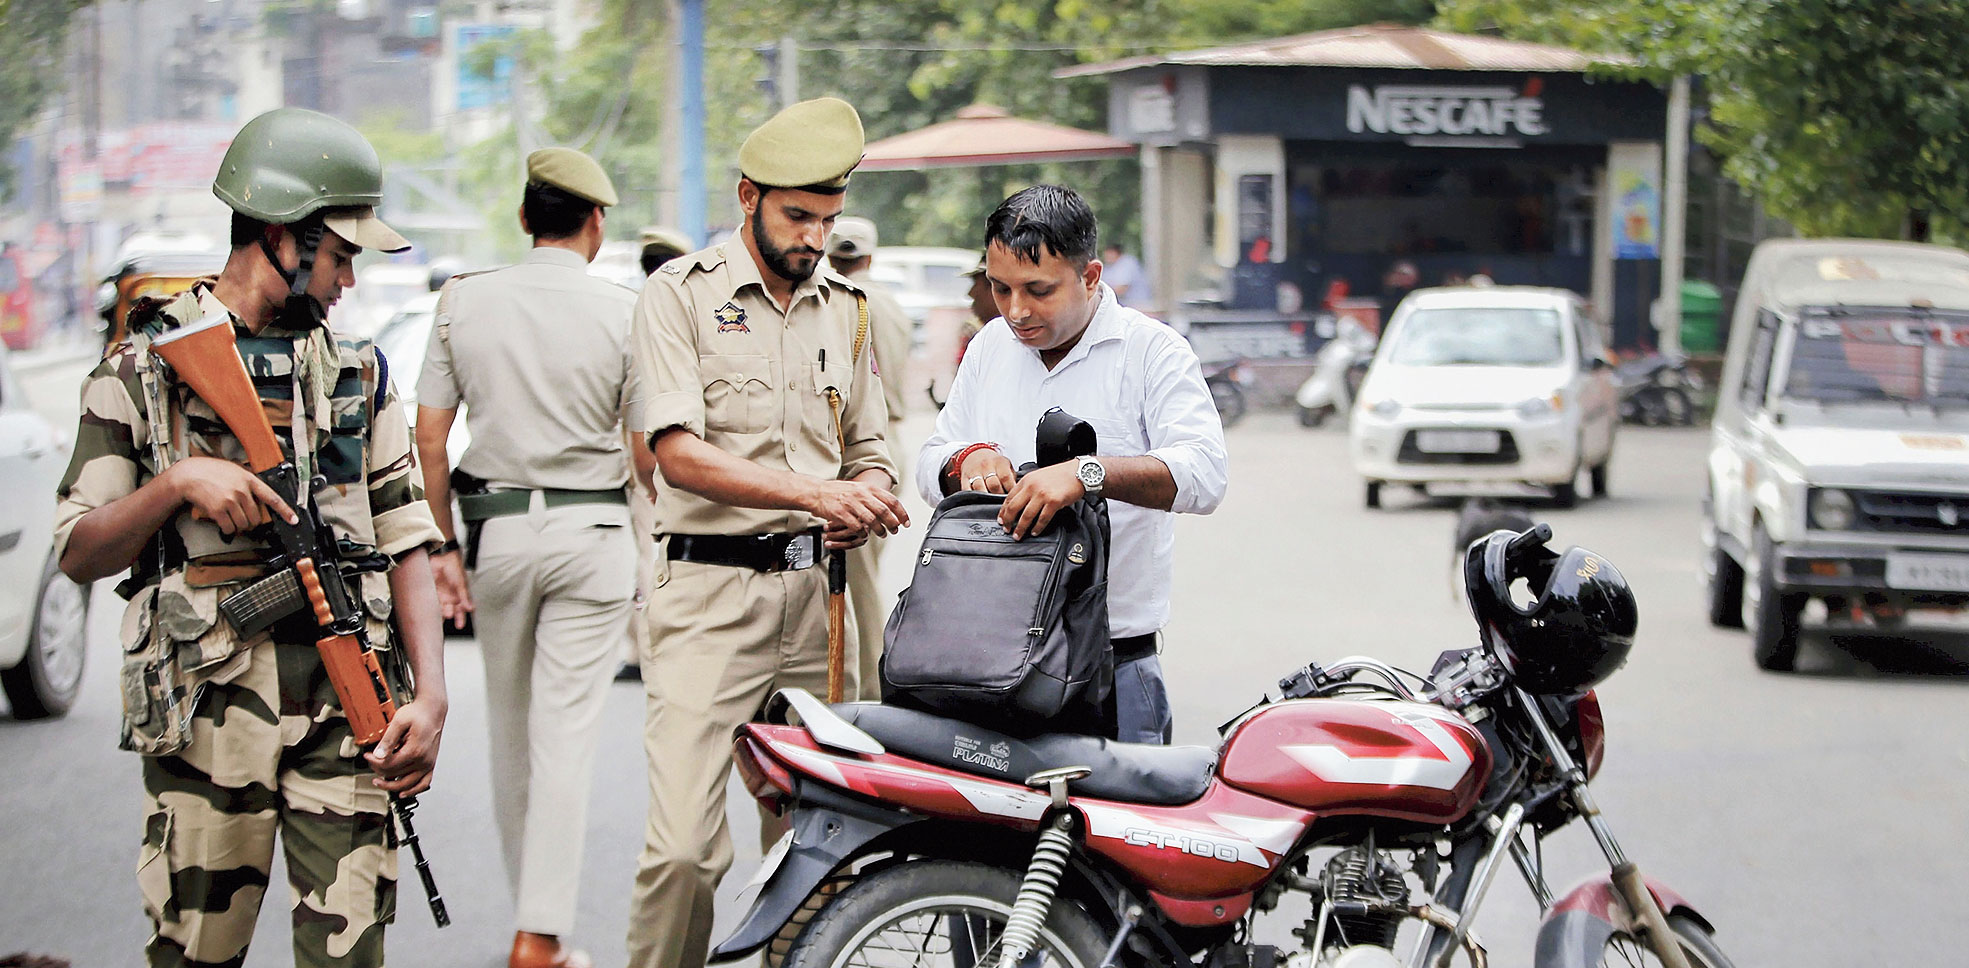 A policeman inspects the bag of a motorcyclist during a security check in Jammu on Tuesday.